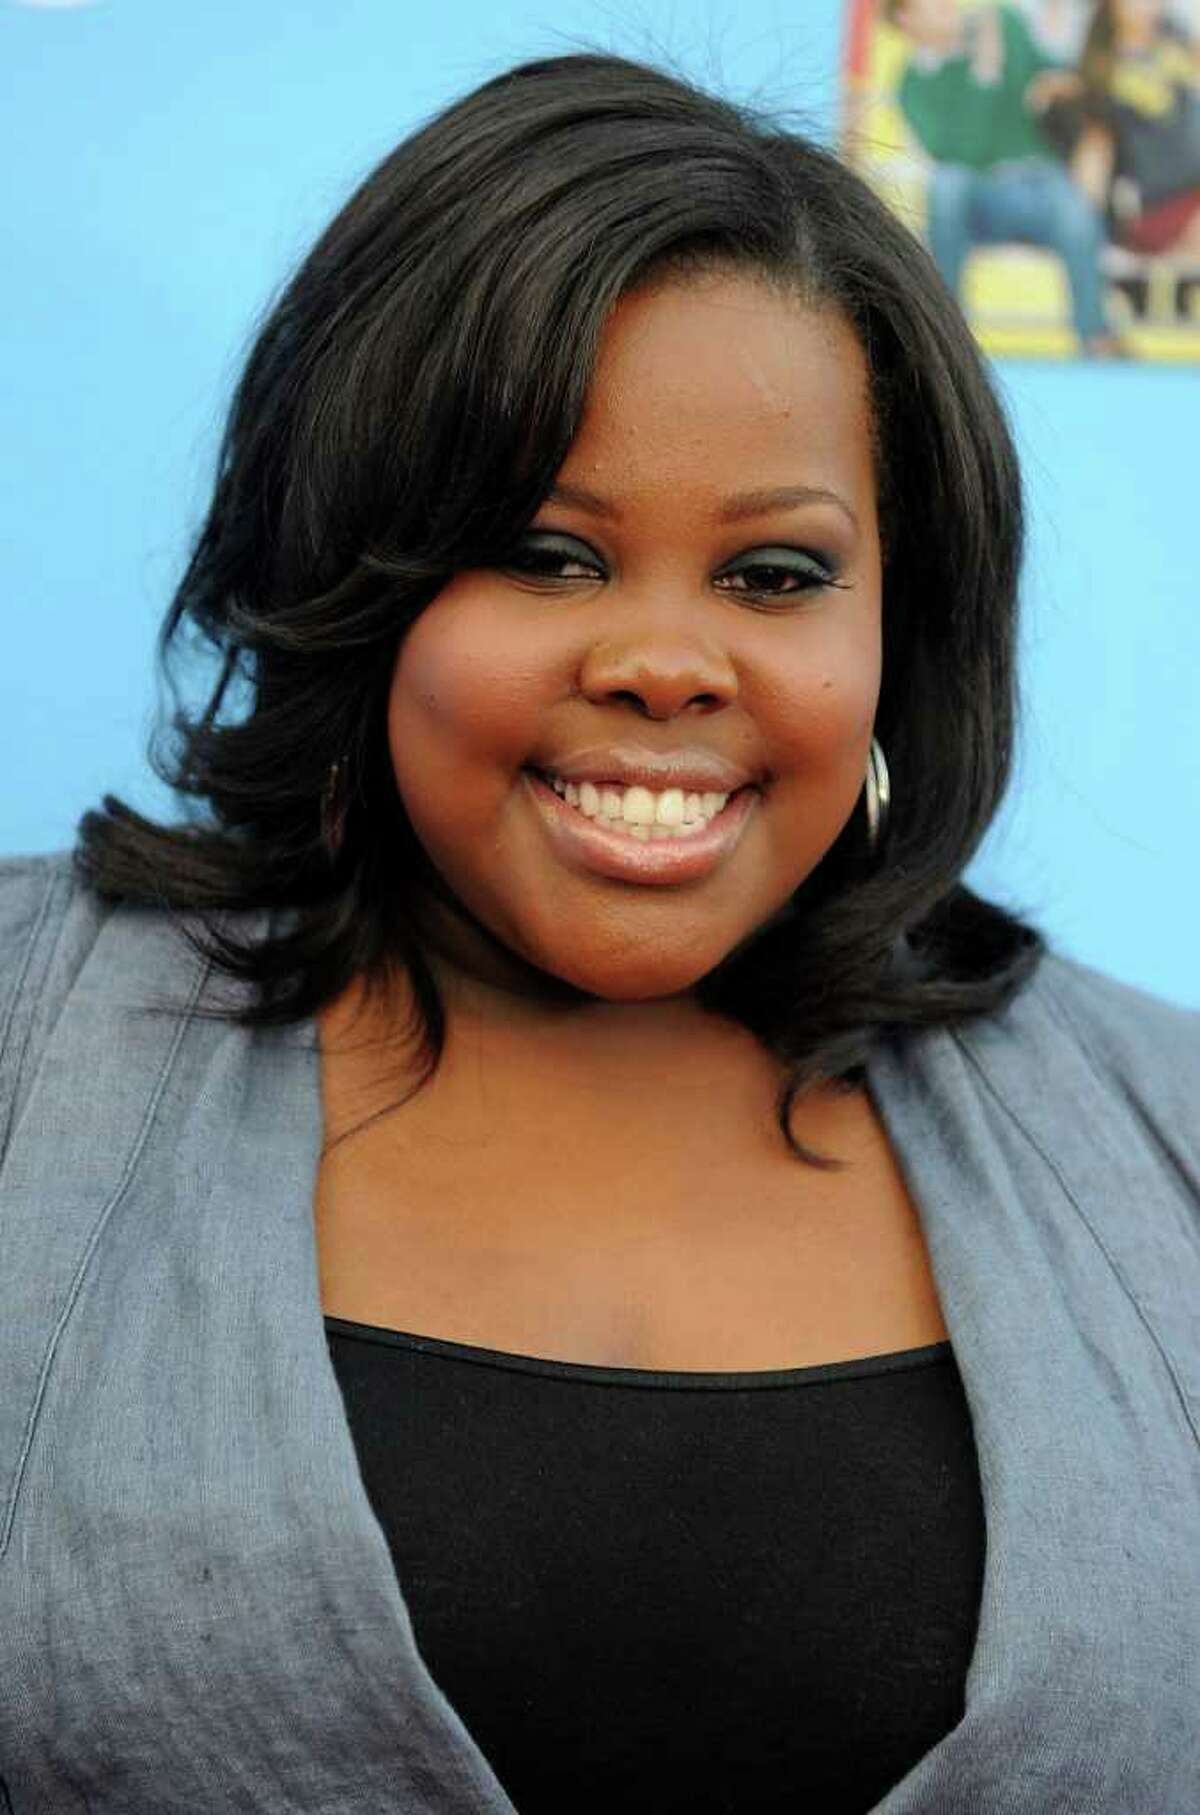 HOLLYWOOD - SEPTEMBER 07: Actress Amber Riley arrives at the premiere of 20th Century Fox's